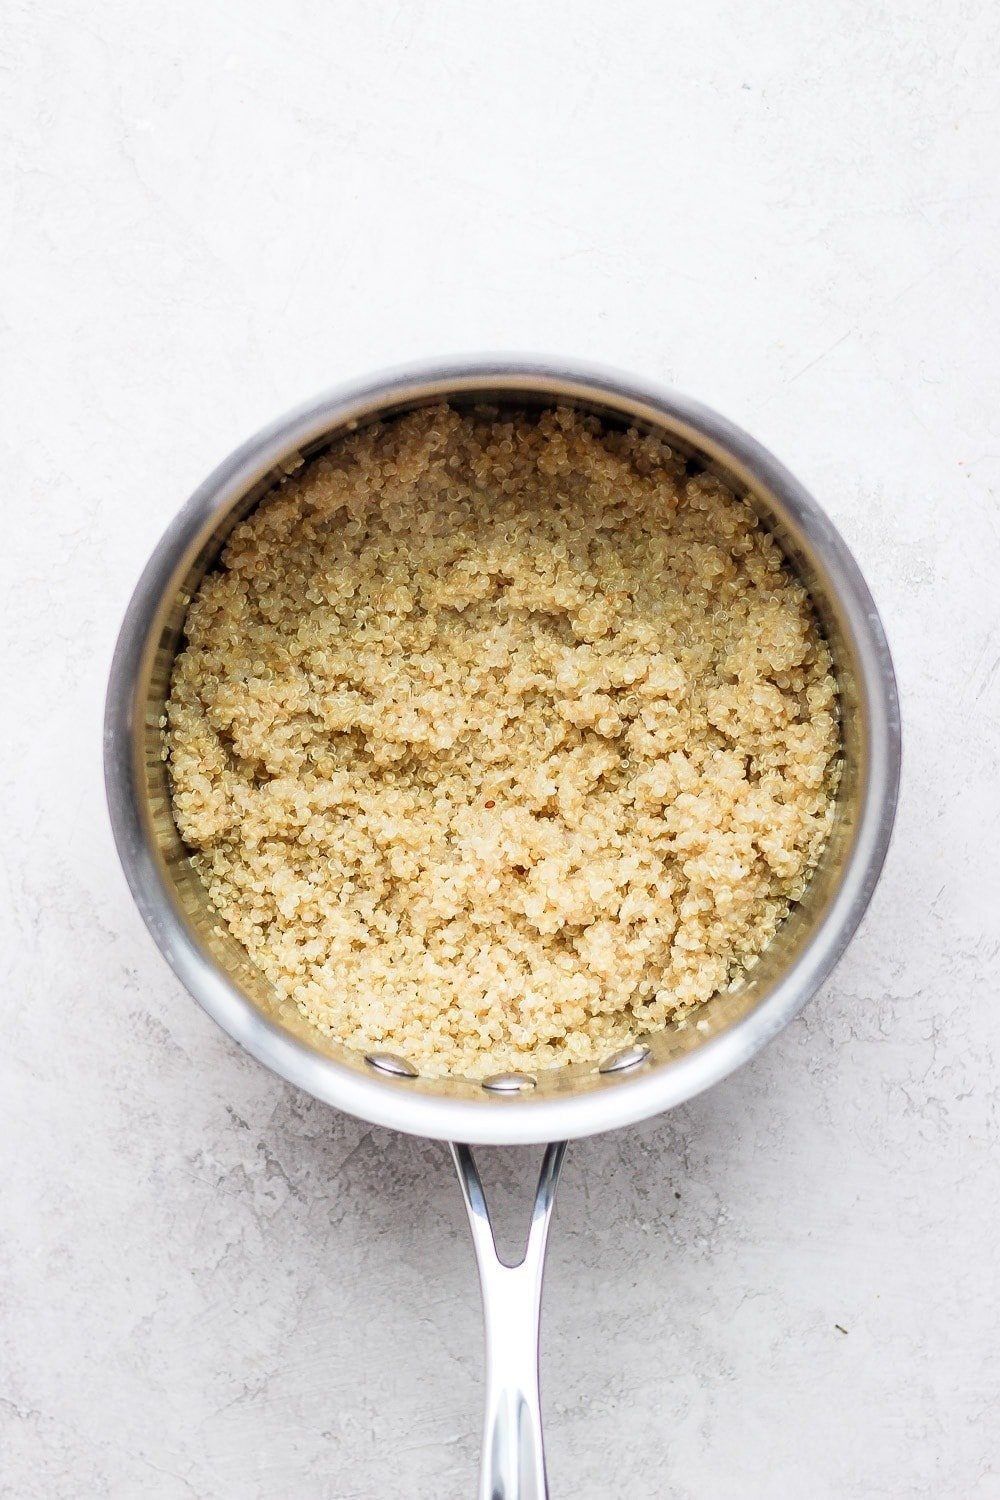 Cooked quinoa in a saucepan